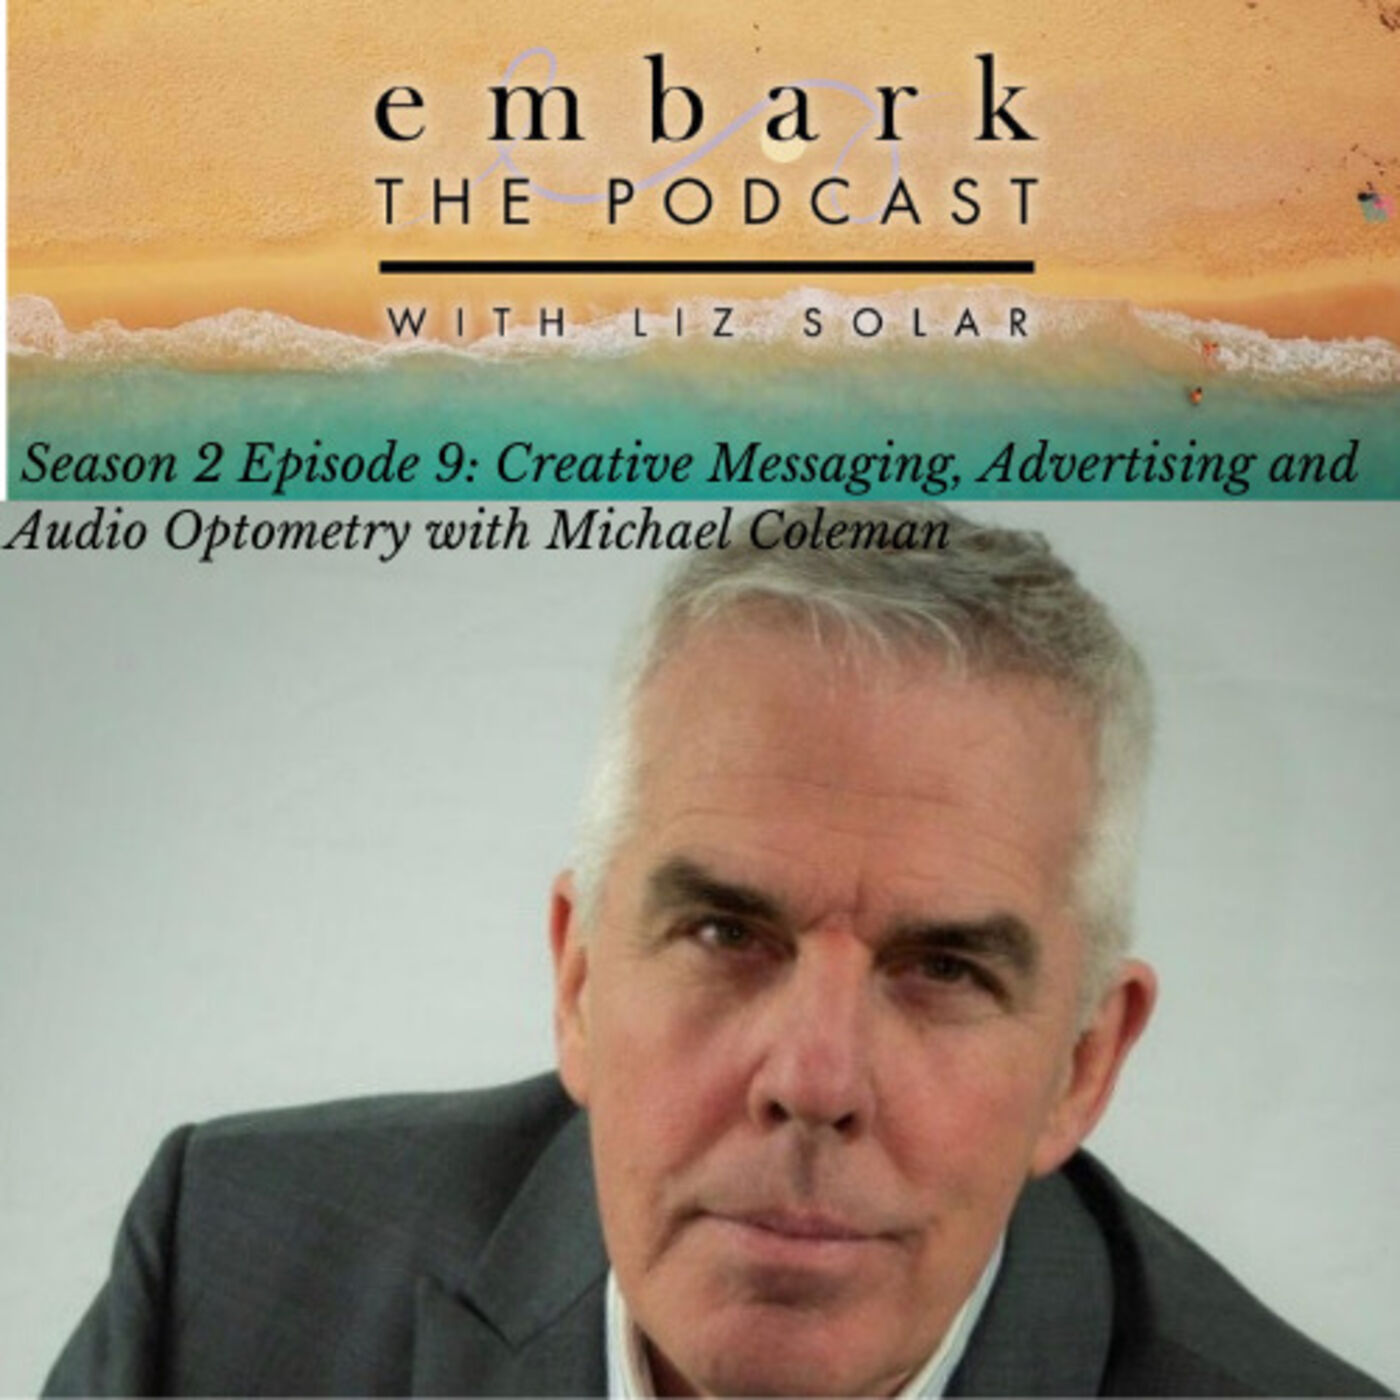 Creative Messaging, Advertising and Audio Optometry with Michael Coleman